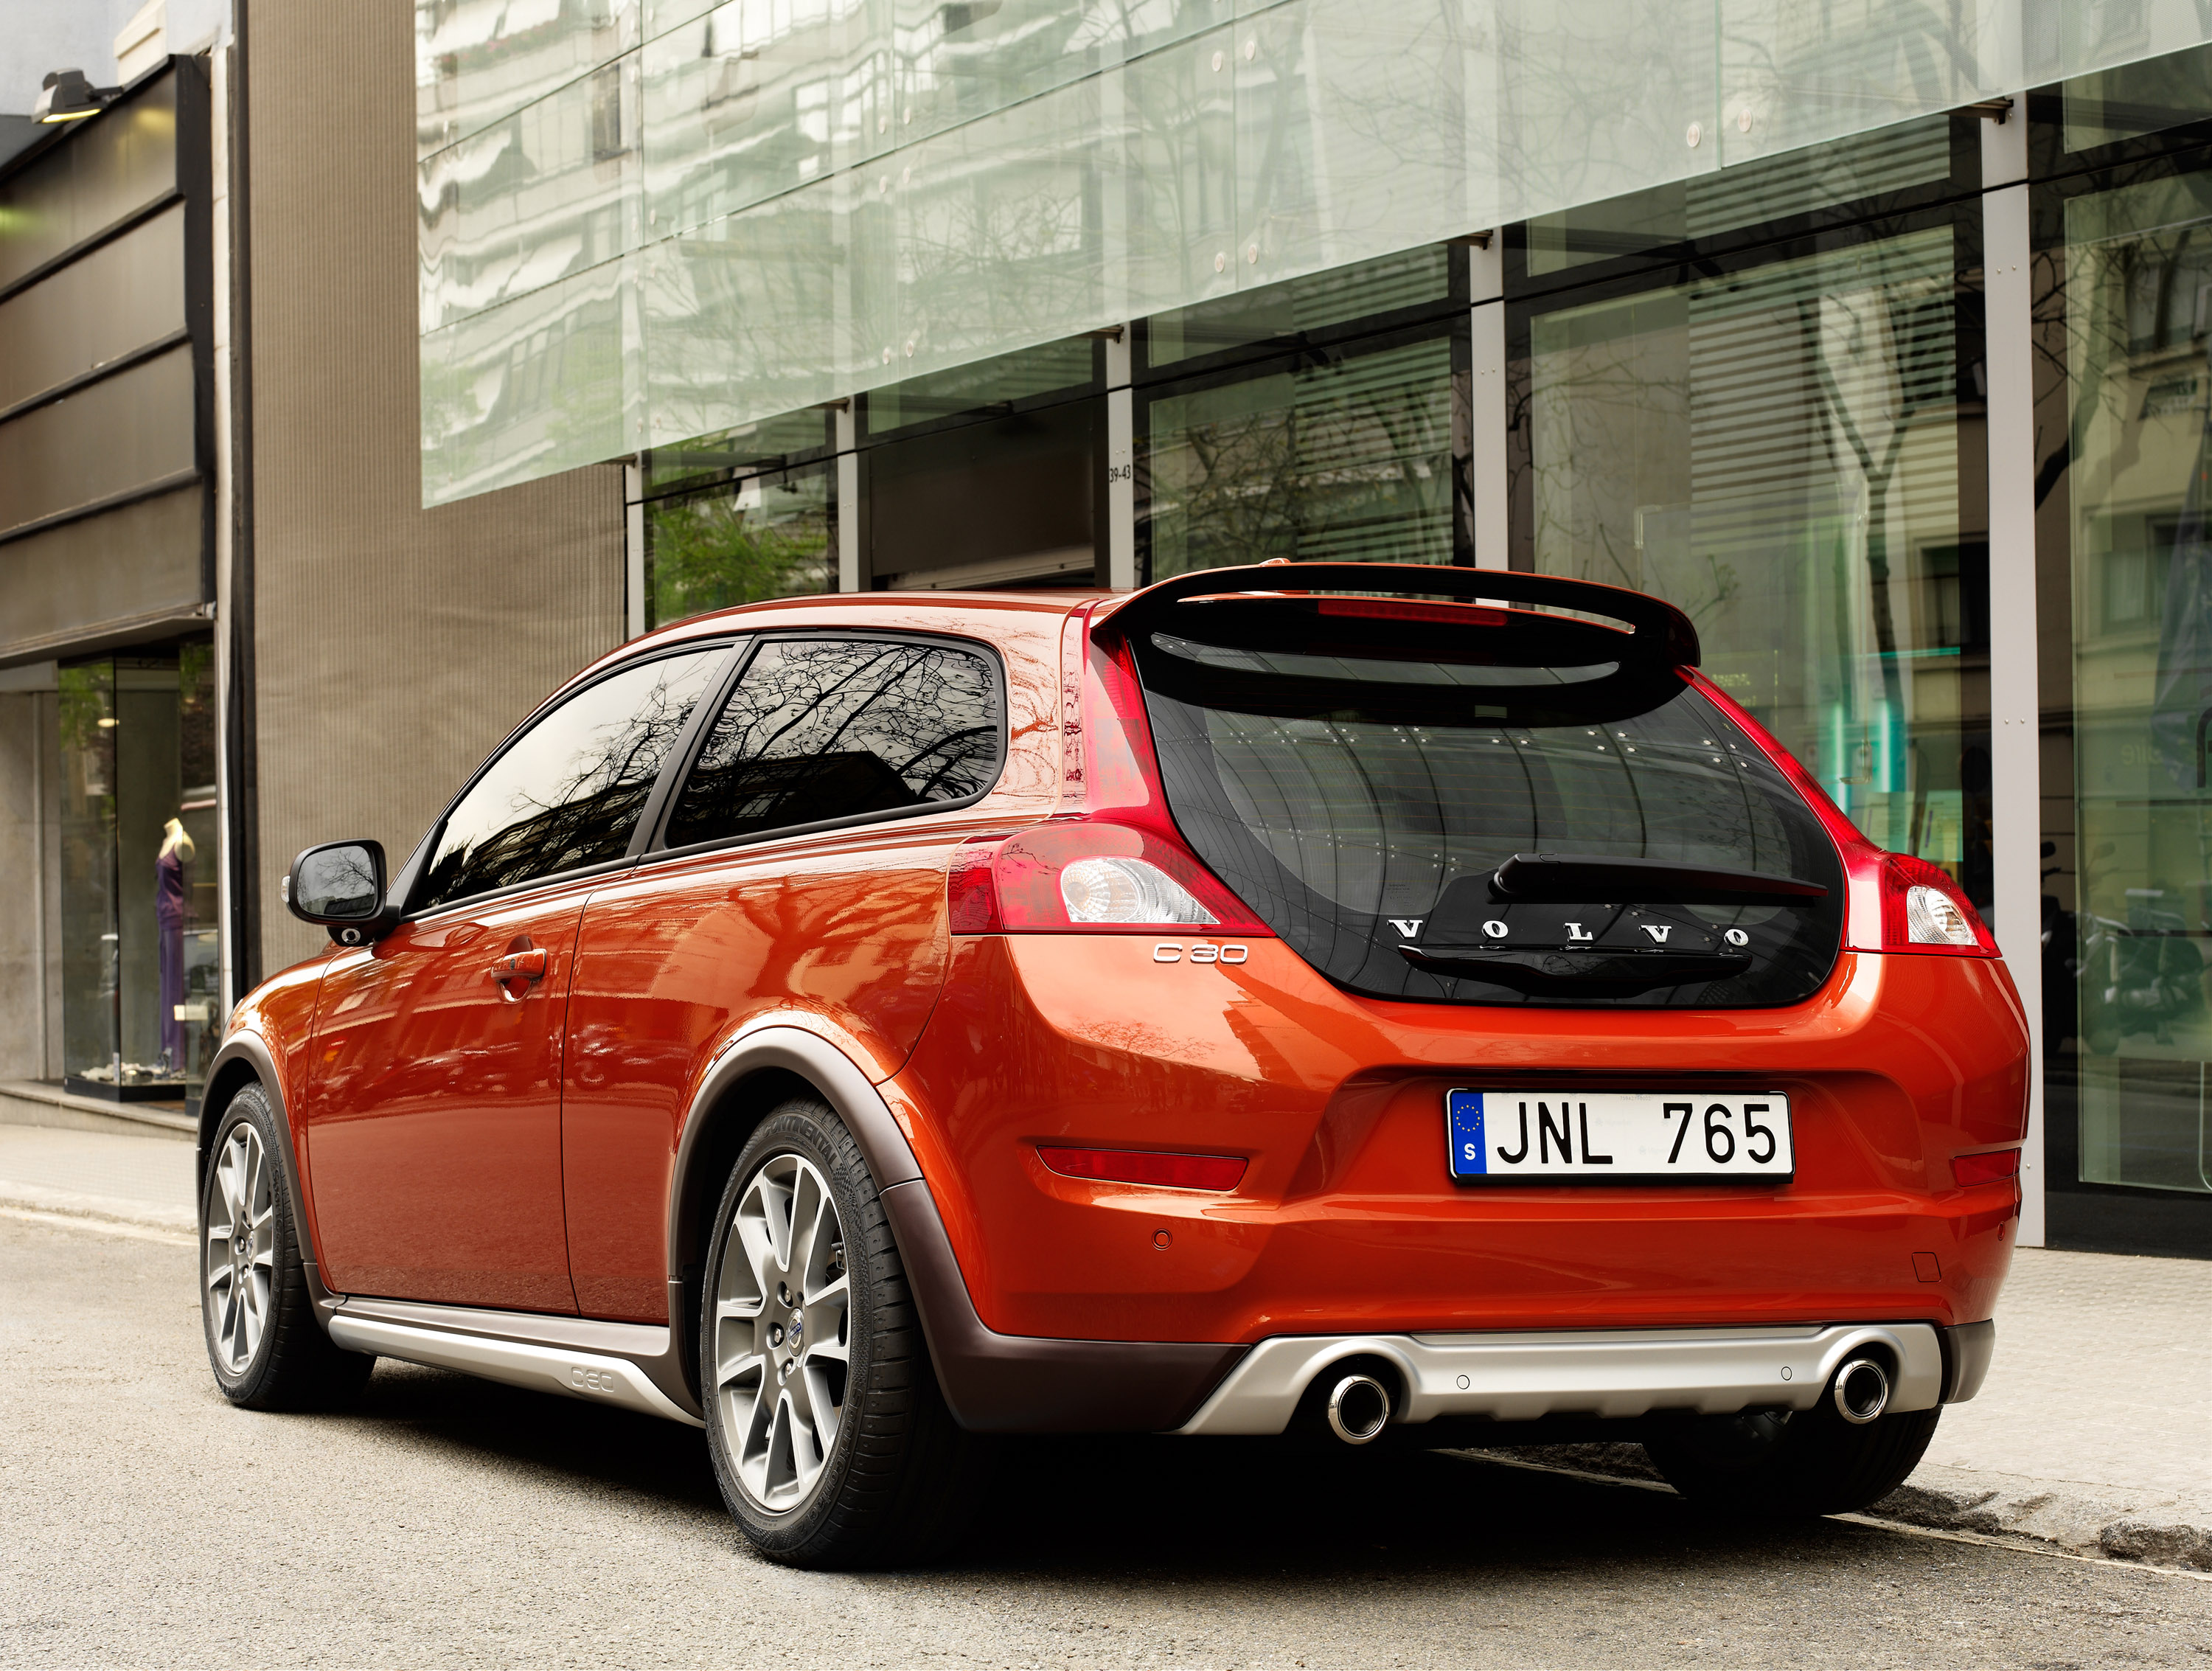 Le Meilleur Volvo Will Release C30 Model With 5 Doors To Compete Golf Vi Ce Mois Ci